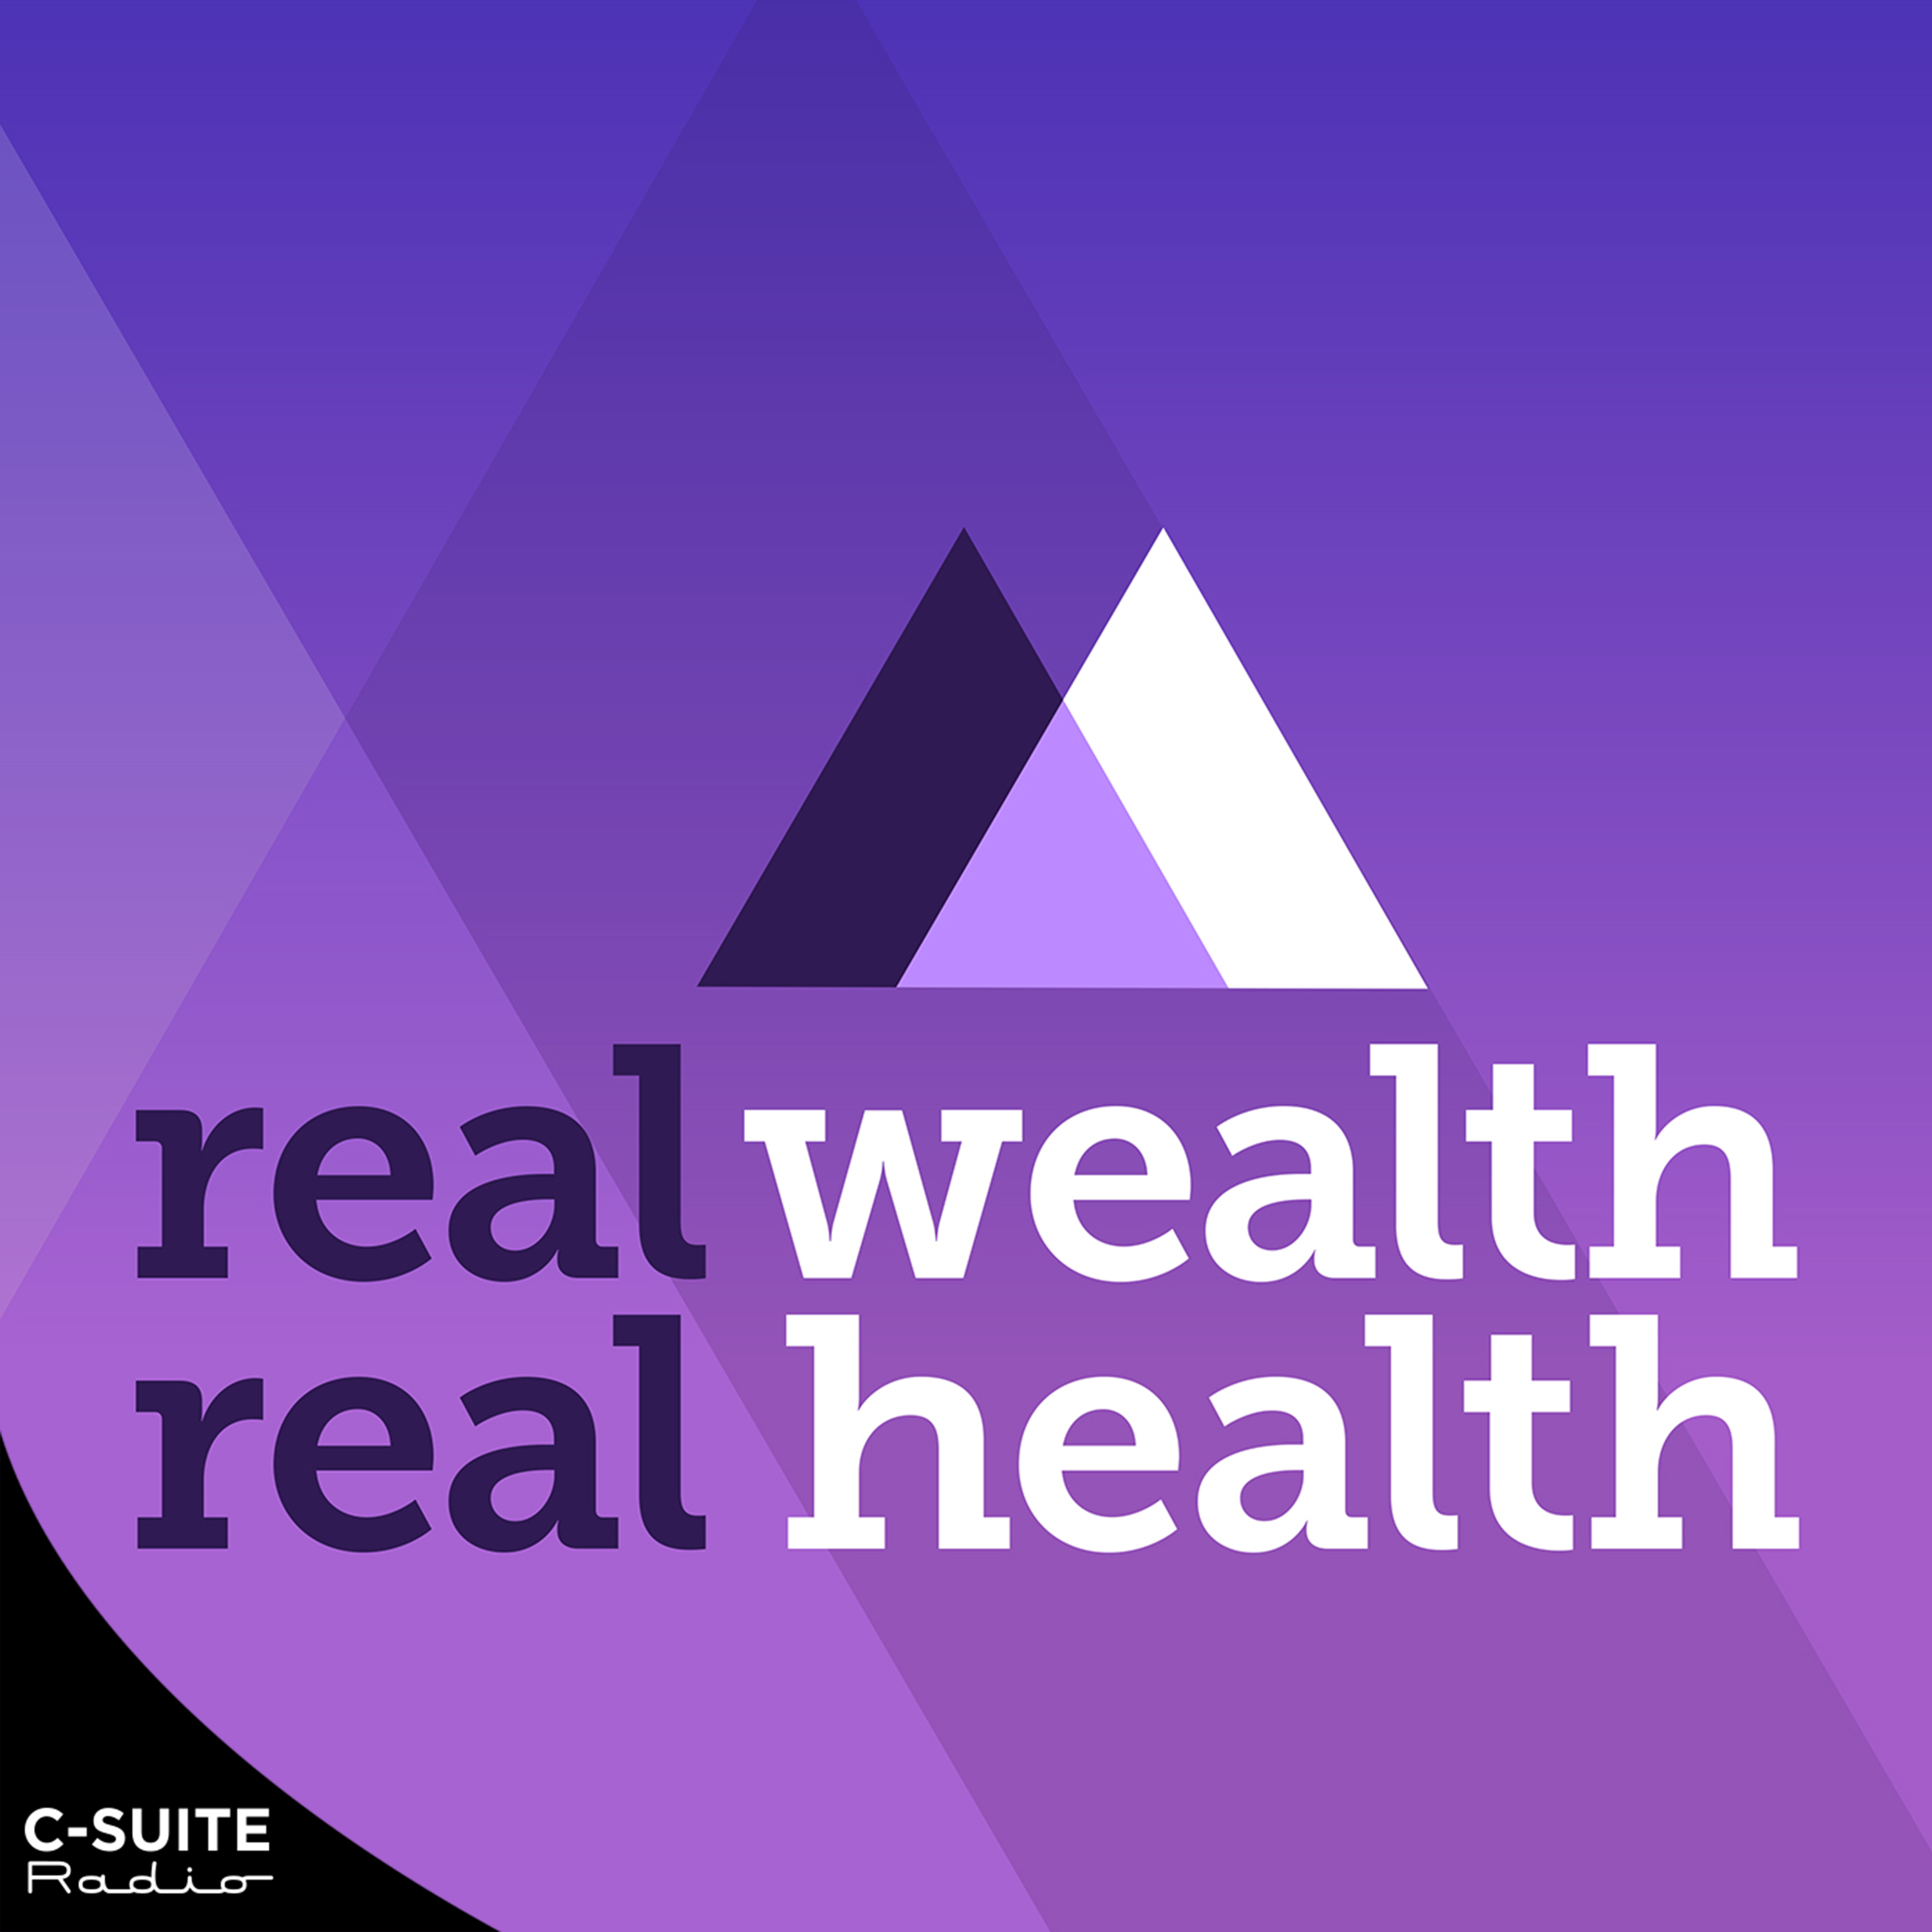 Real Wealth Real Health